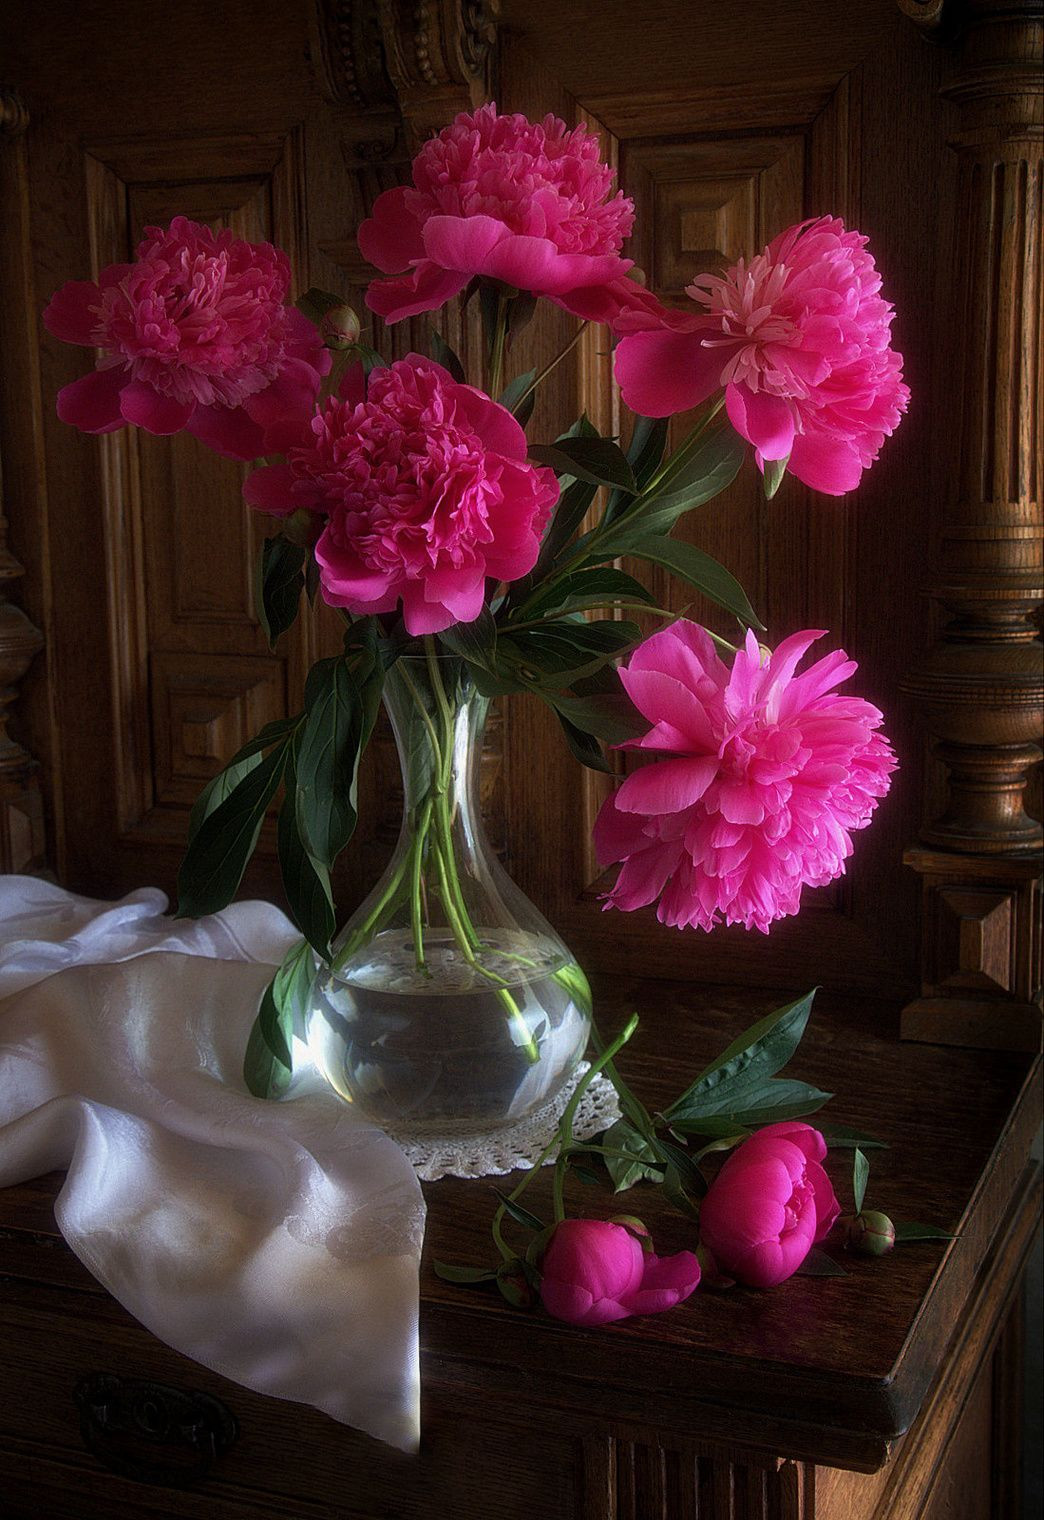 still life flowers in a vase of pin by angora on still life pinterest peony arrangement for pin by angora on still life pinterest peony arrangement beautiful flowers and flowers